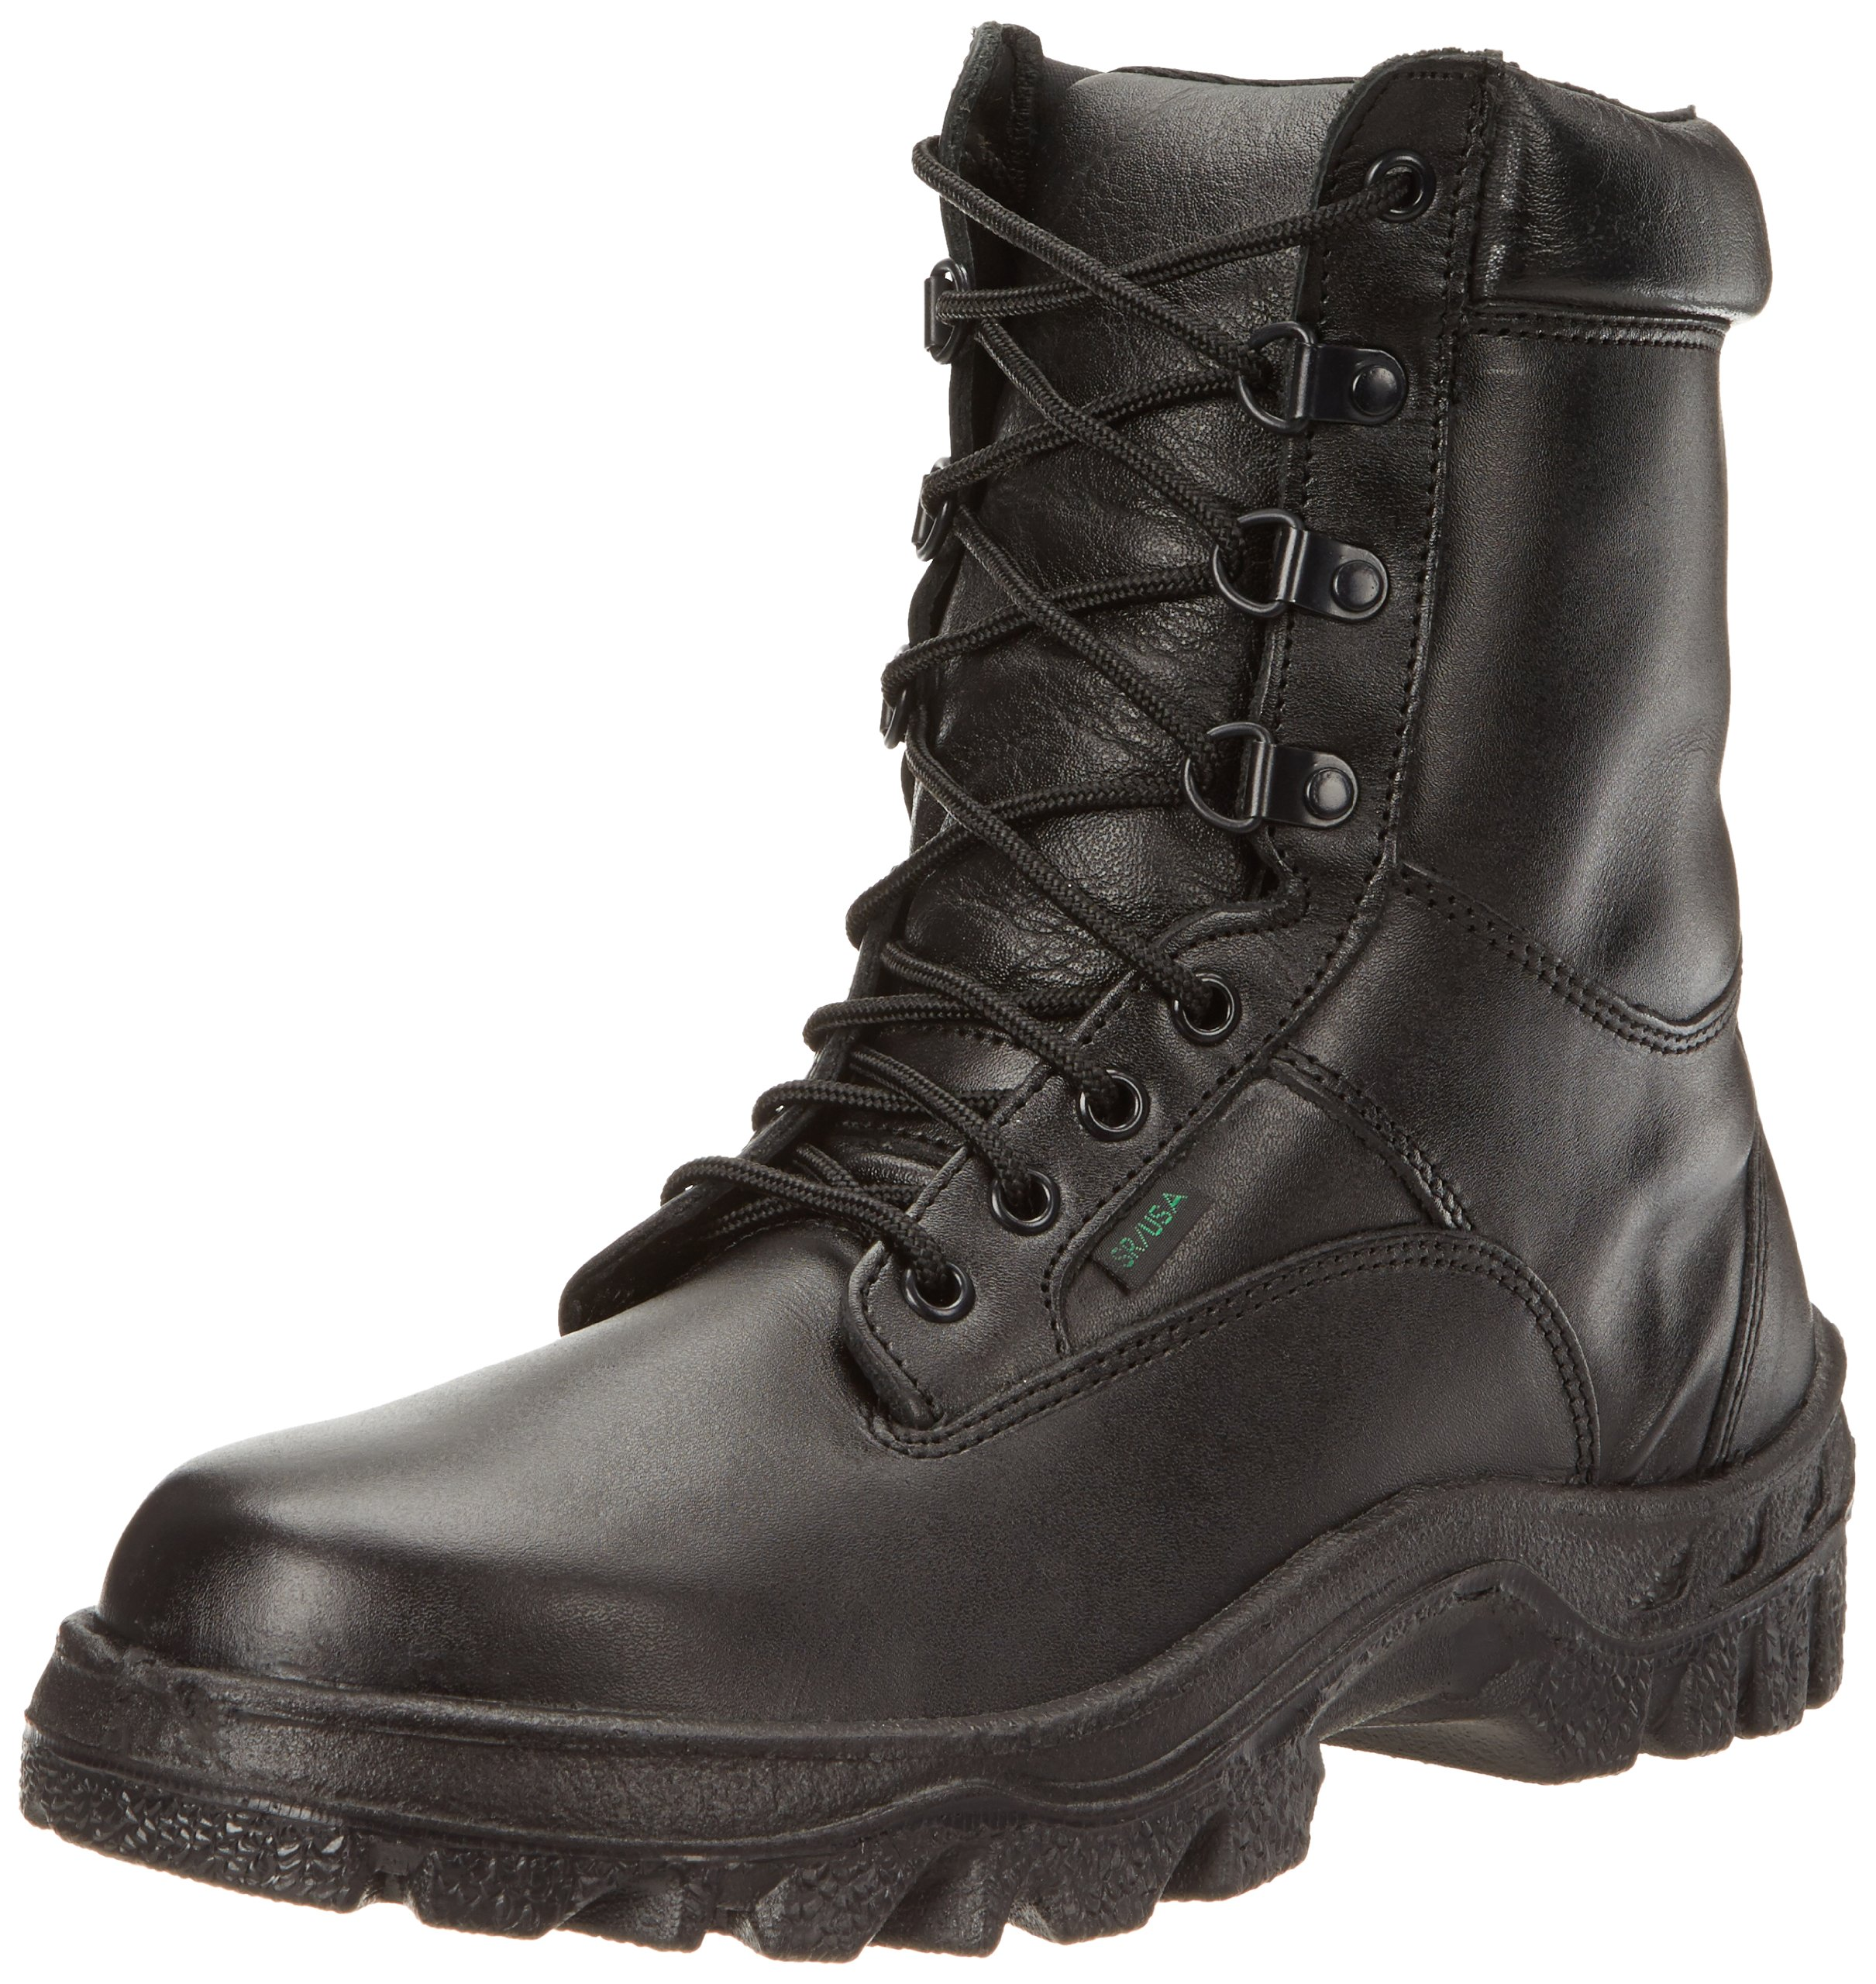 Rocky Men's Postal Tmc 8 Inch Work Boot,Black,13 W US